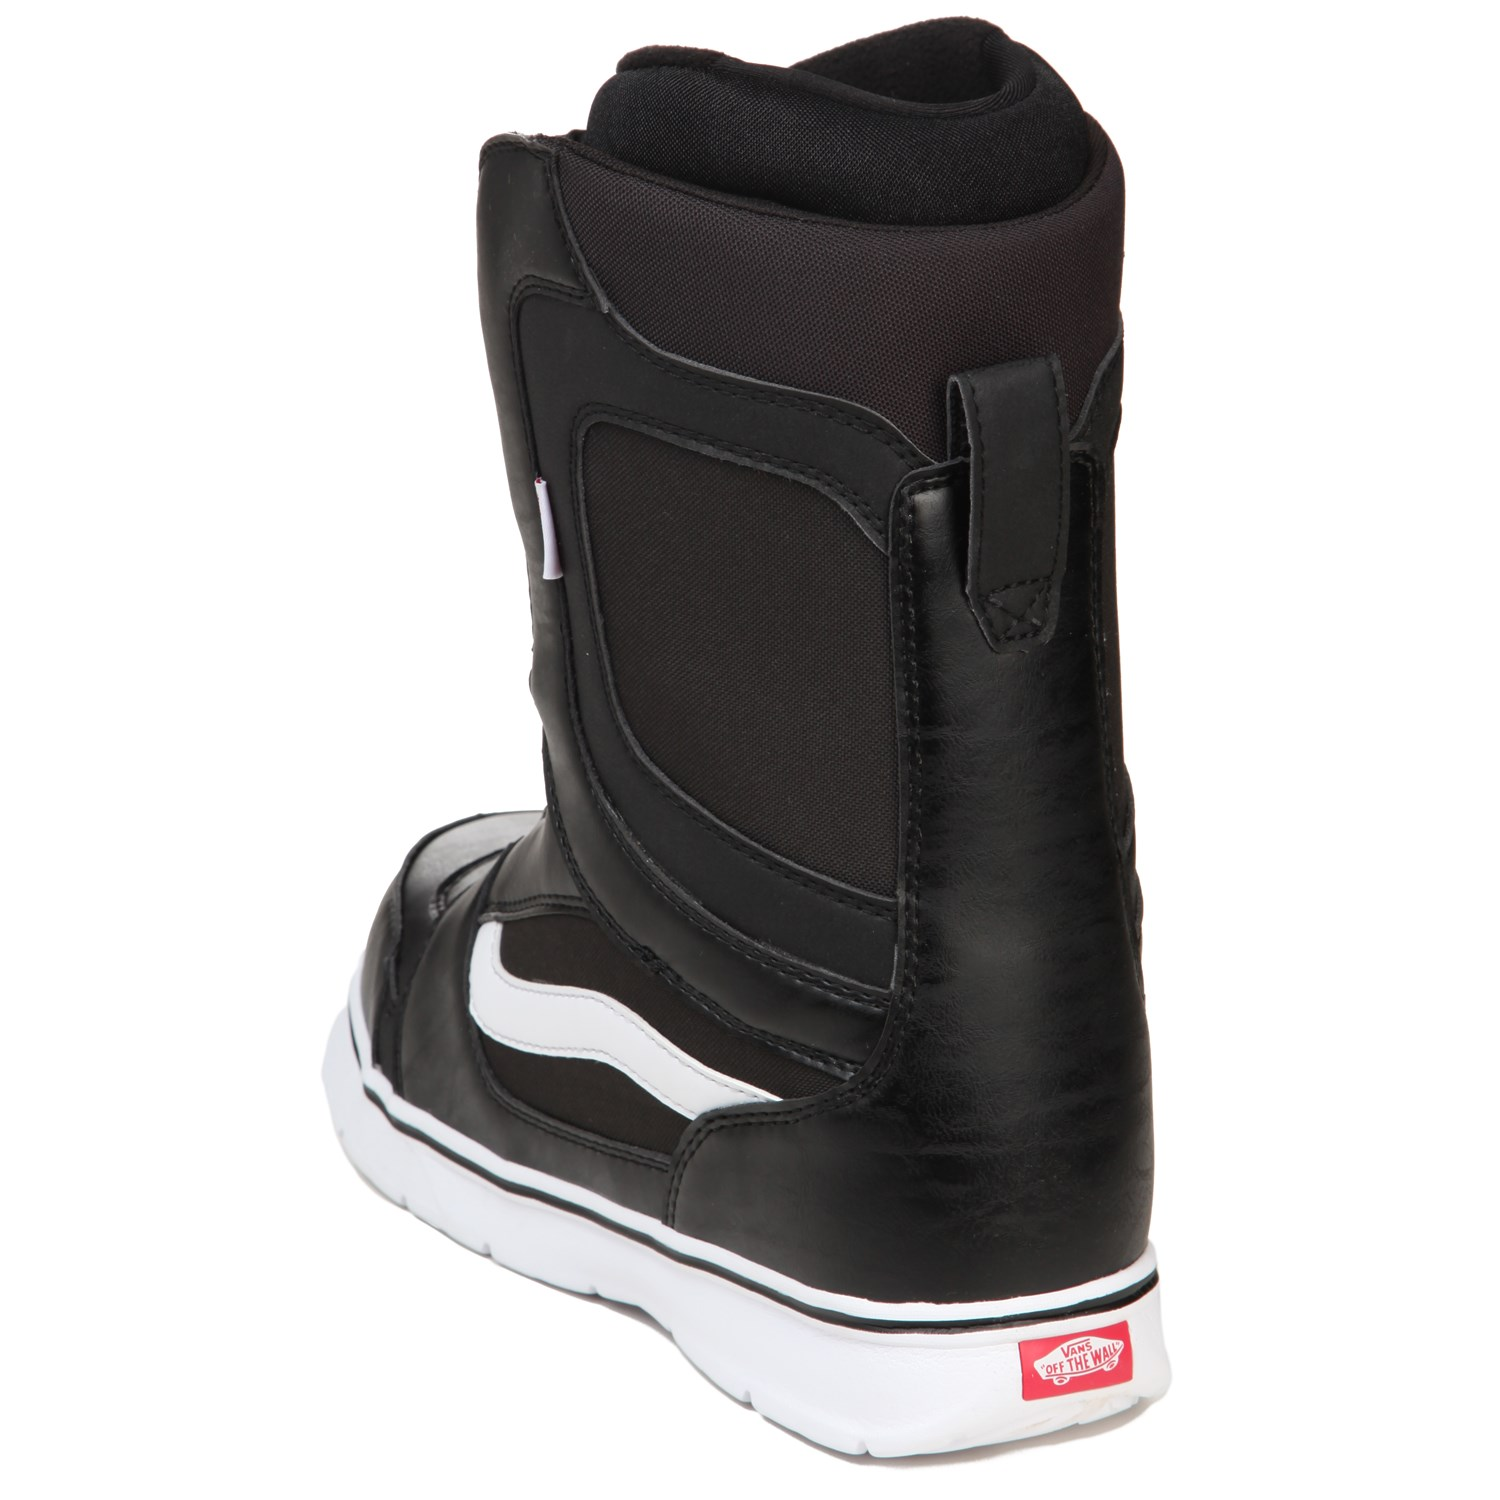 2a31935bd2 Vans snowboard boots- surfing time – thefashiontamer.com